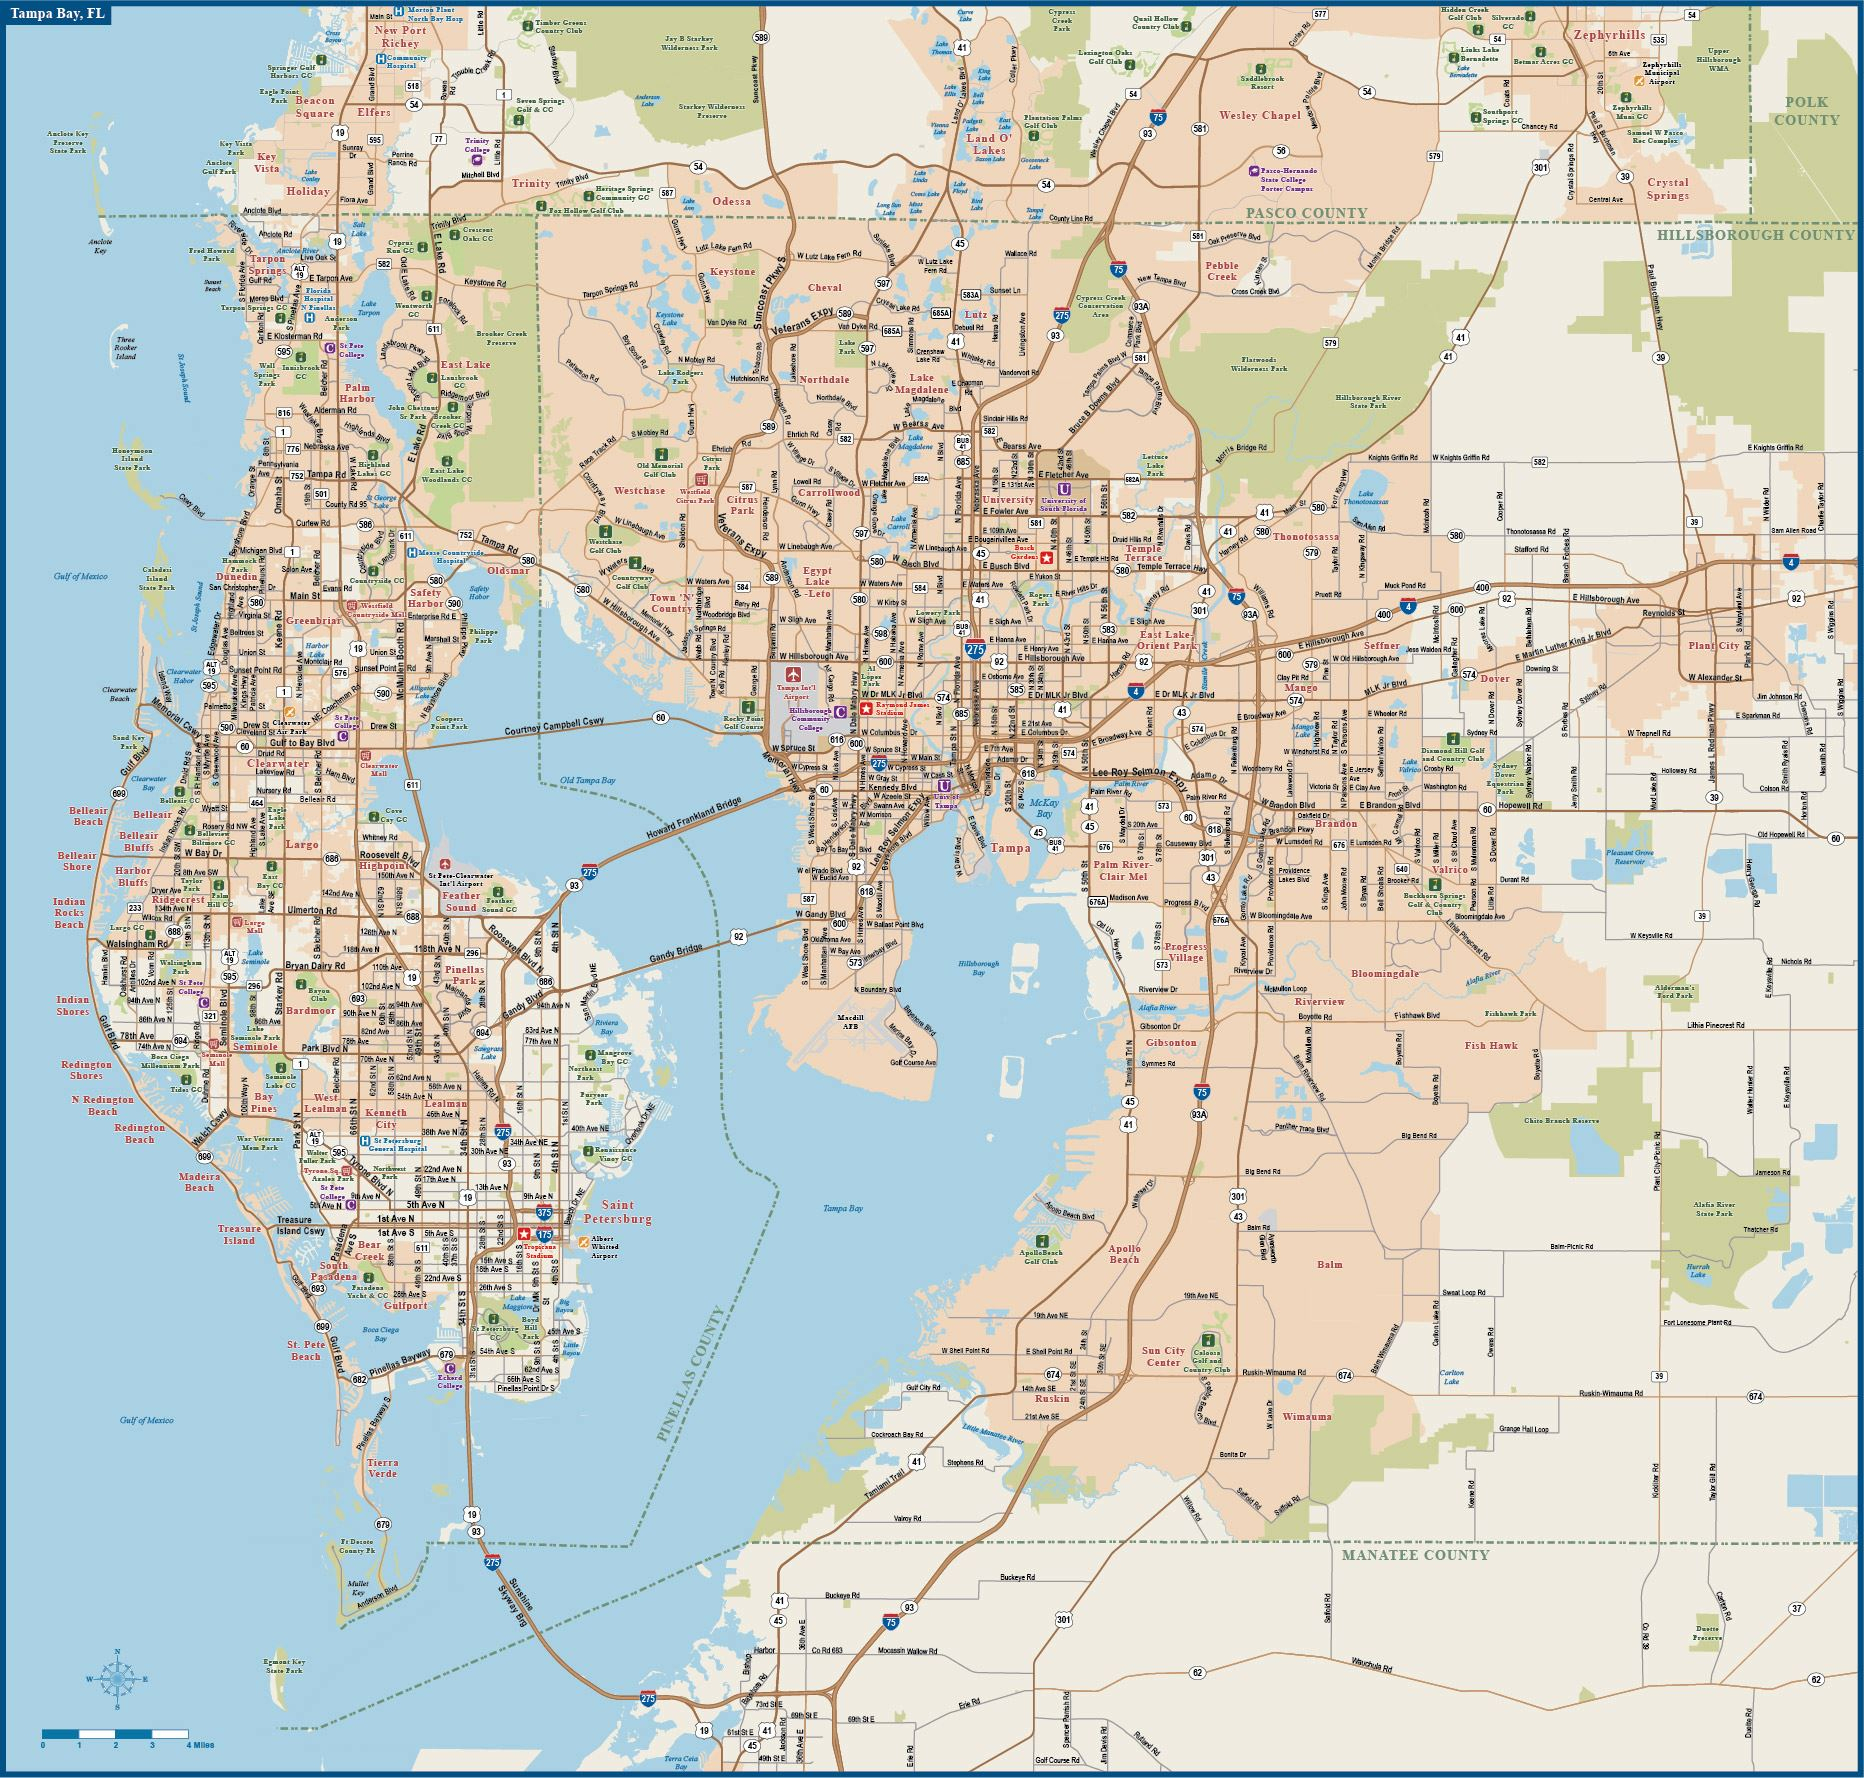 Large Tampa Maps For Free Download And Print | High-Resolution And - Google Maps Tampa Florida